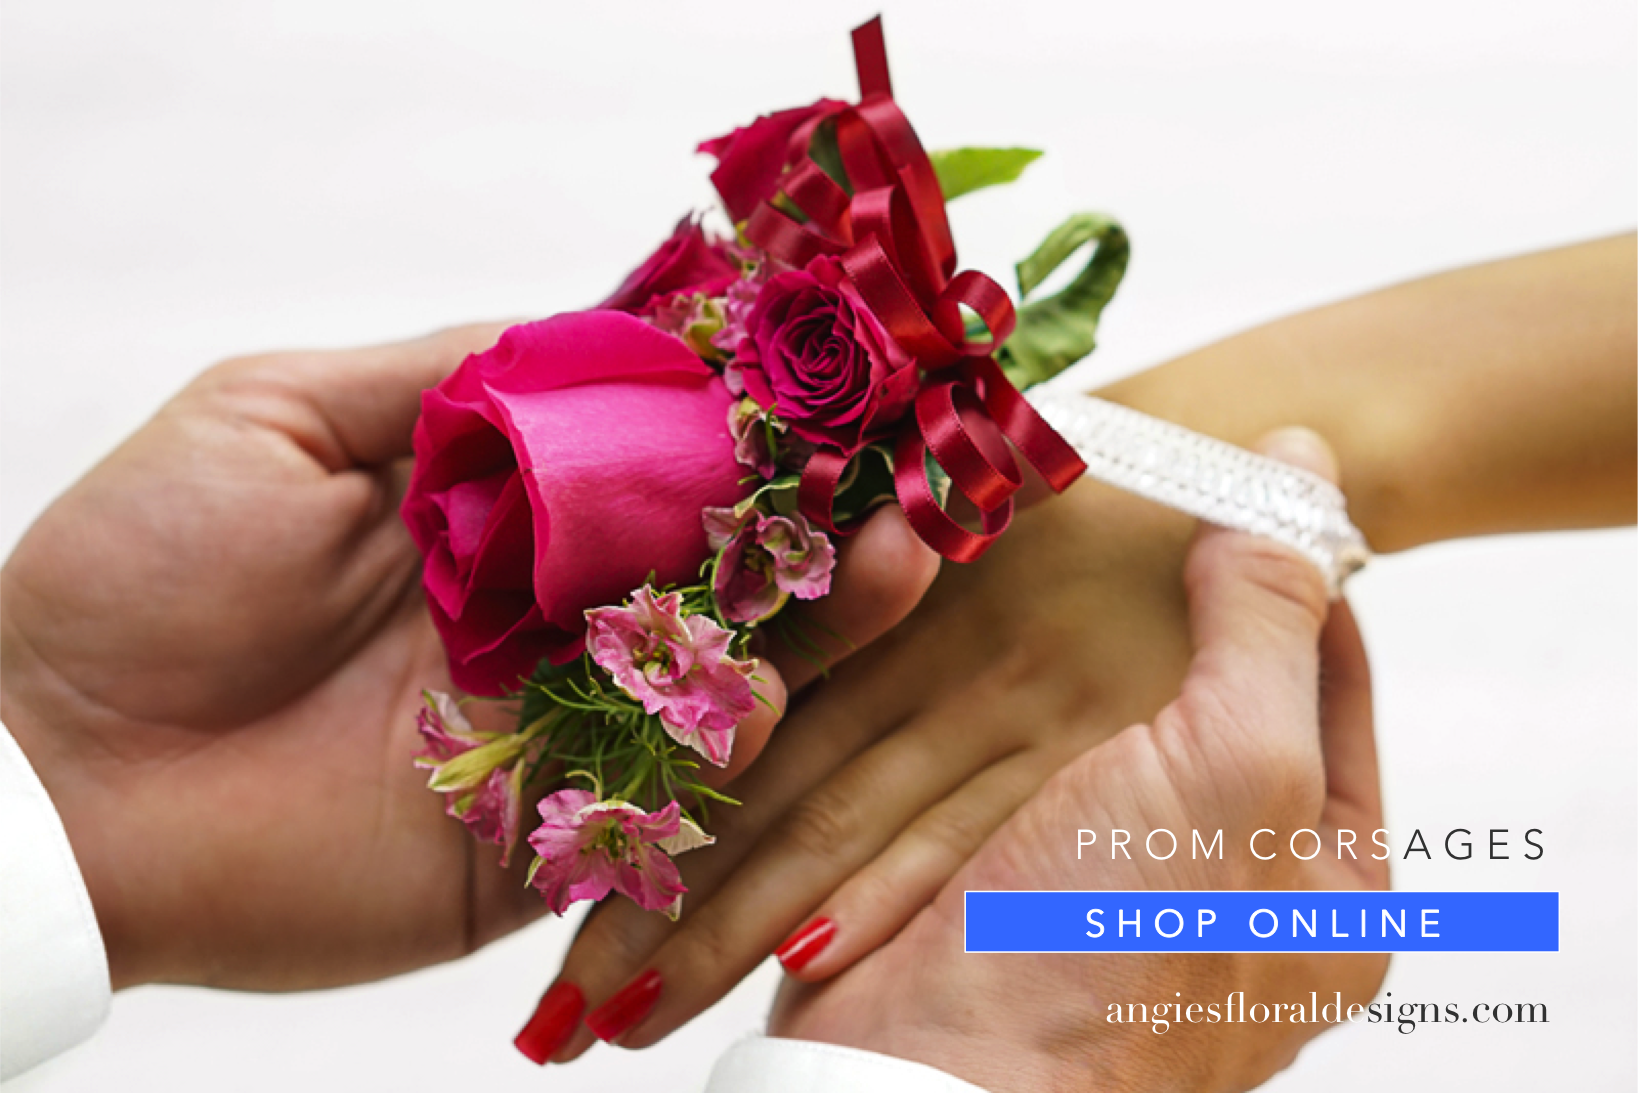 -.-angies-2-rosescorsage-floral915-designs-el-paso-florist-79912-angies-el-paso-florist-el-paso-flowershop-angies-flowers-designs-79912.png